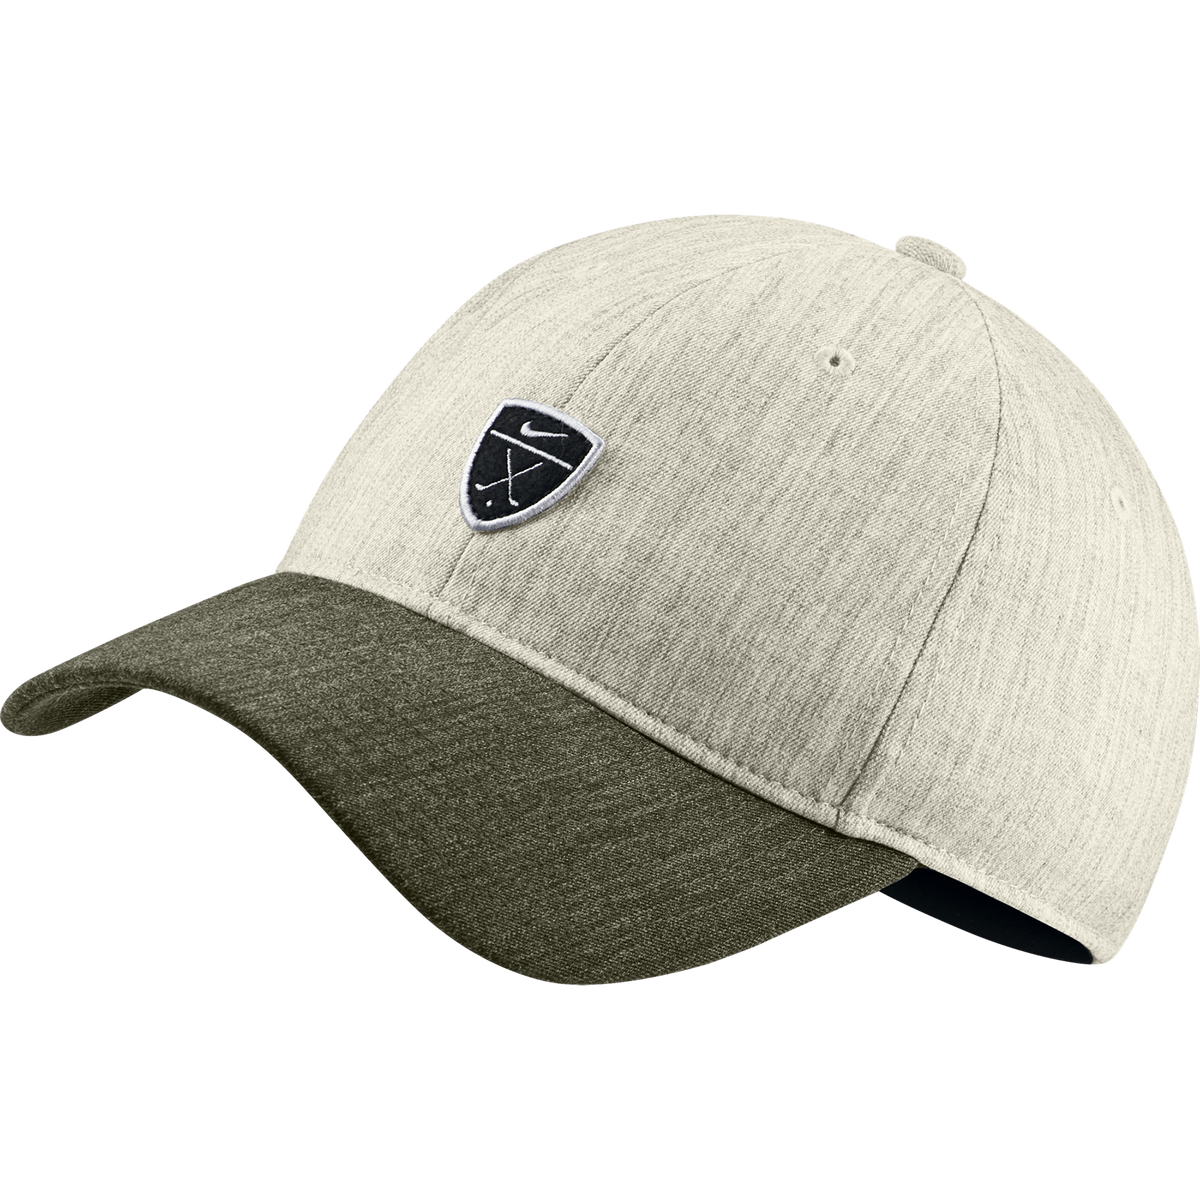 62c39a0516dea Images. Nike Heritage86 Golf Hat